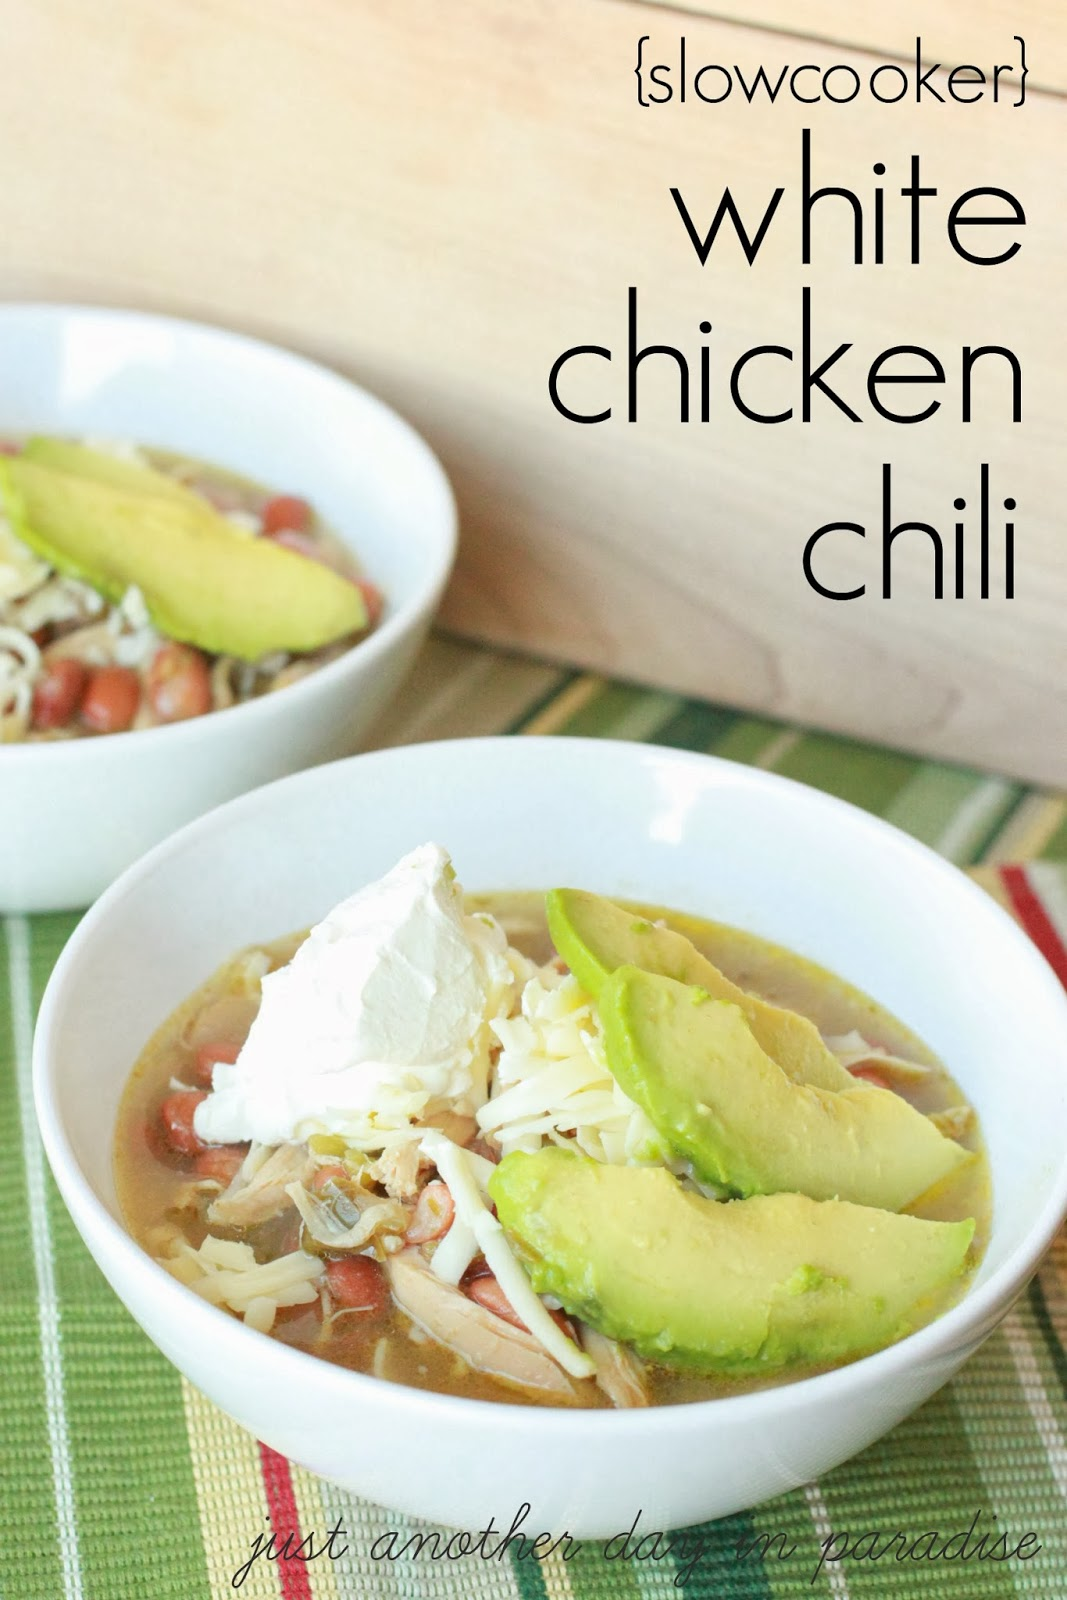 Larissa Another Day: White Chicken Chili (Slow Cooker Saturday)